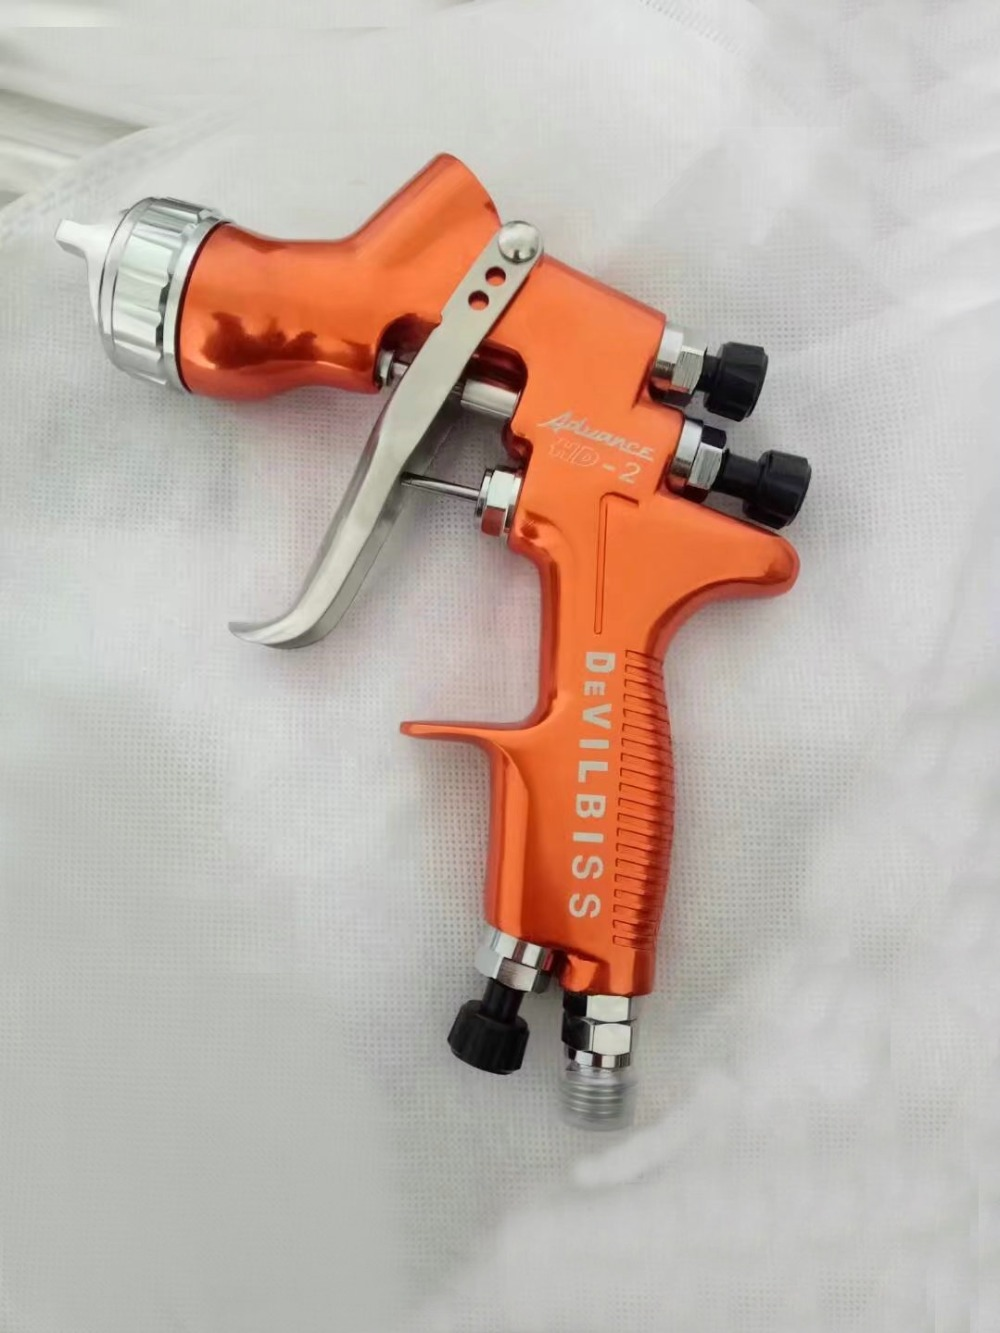 HVLP Devilbiss Spray Gun Gravity Feed for all Auto Paint ,Topcoat and Touch-Up with 600cc Plastic Paint Cup samer e887 hvlp paint spray gun for all auto paint topcoat and touch up with 600ml plastic paint cup high atomization